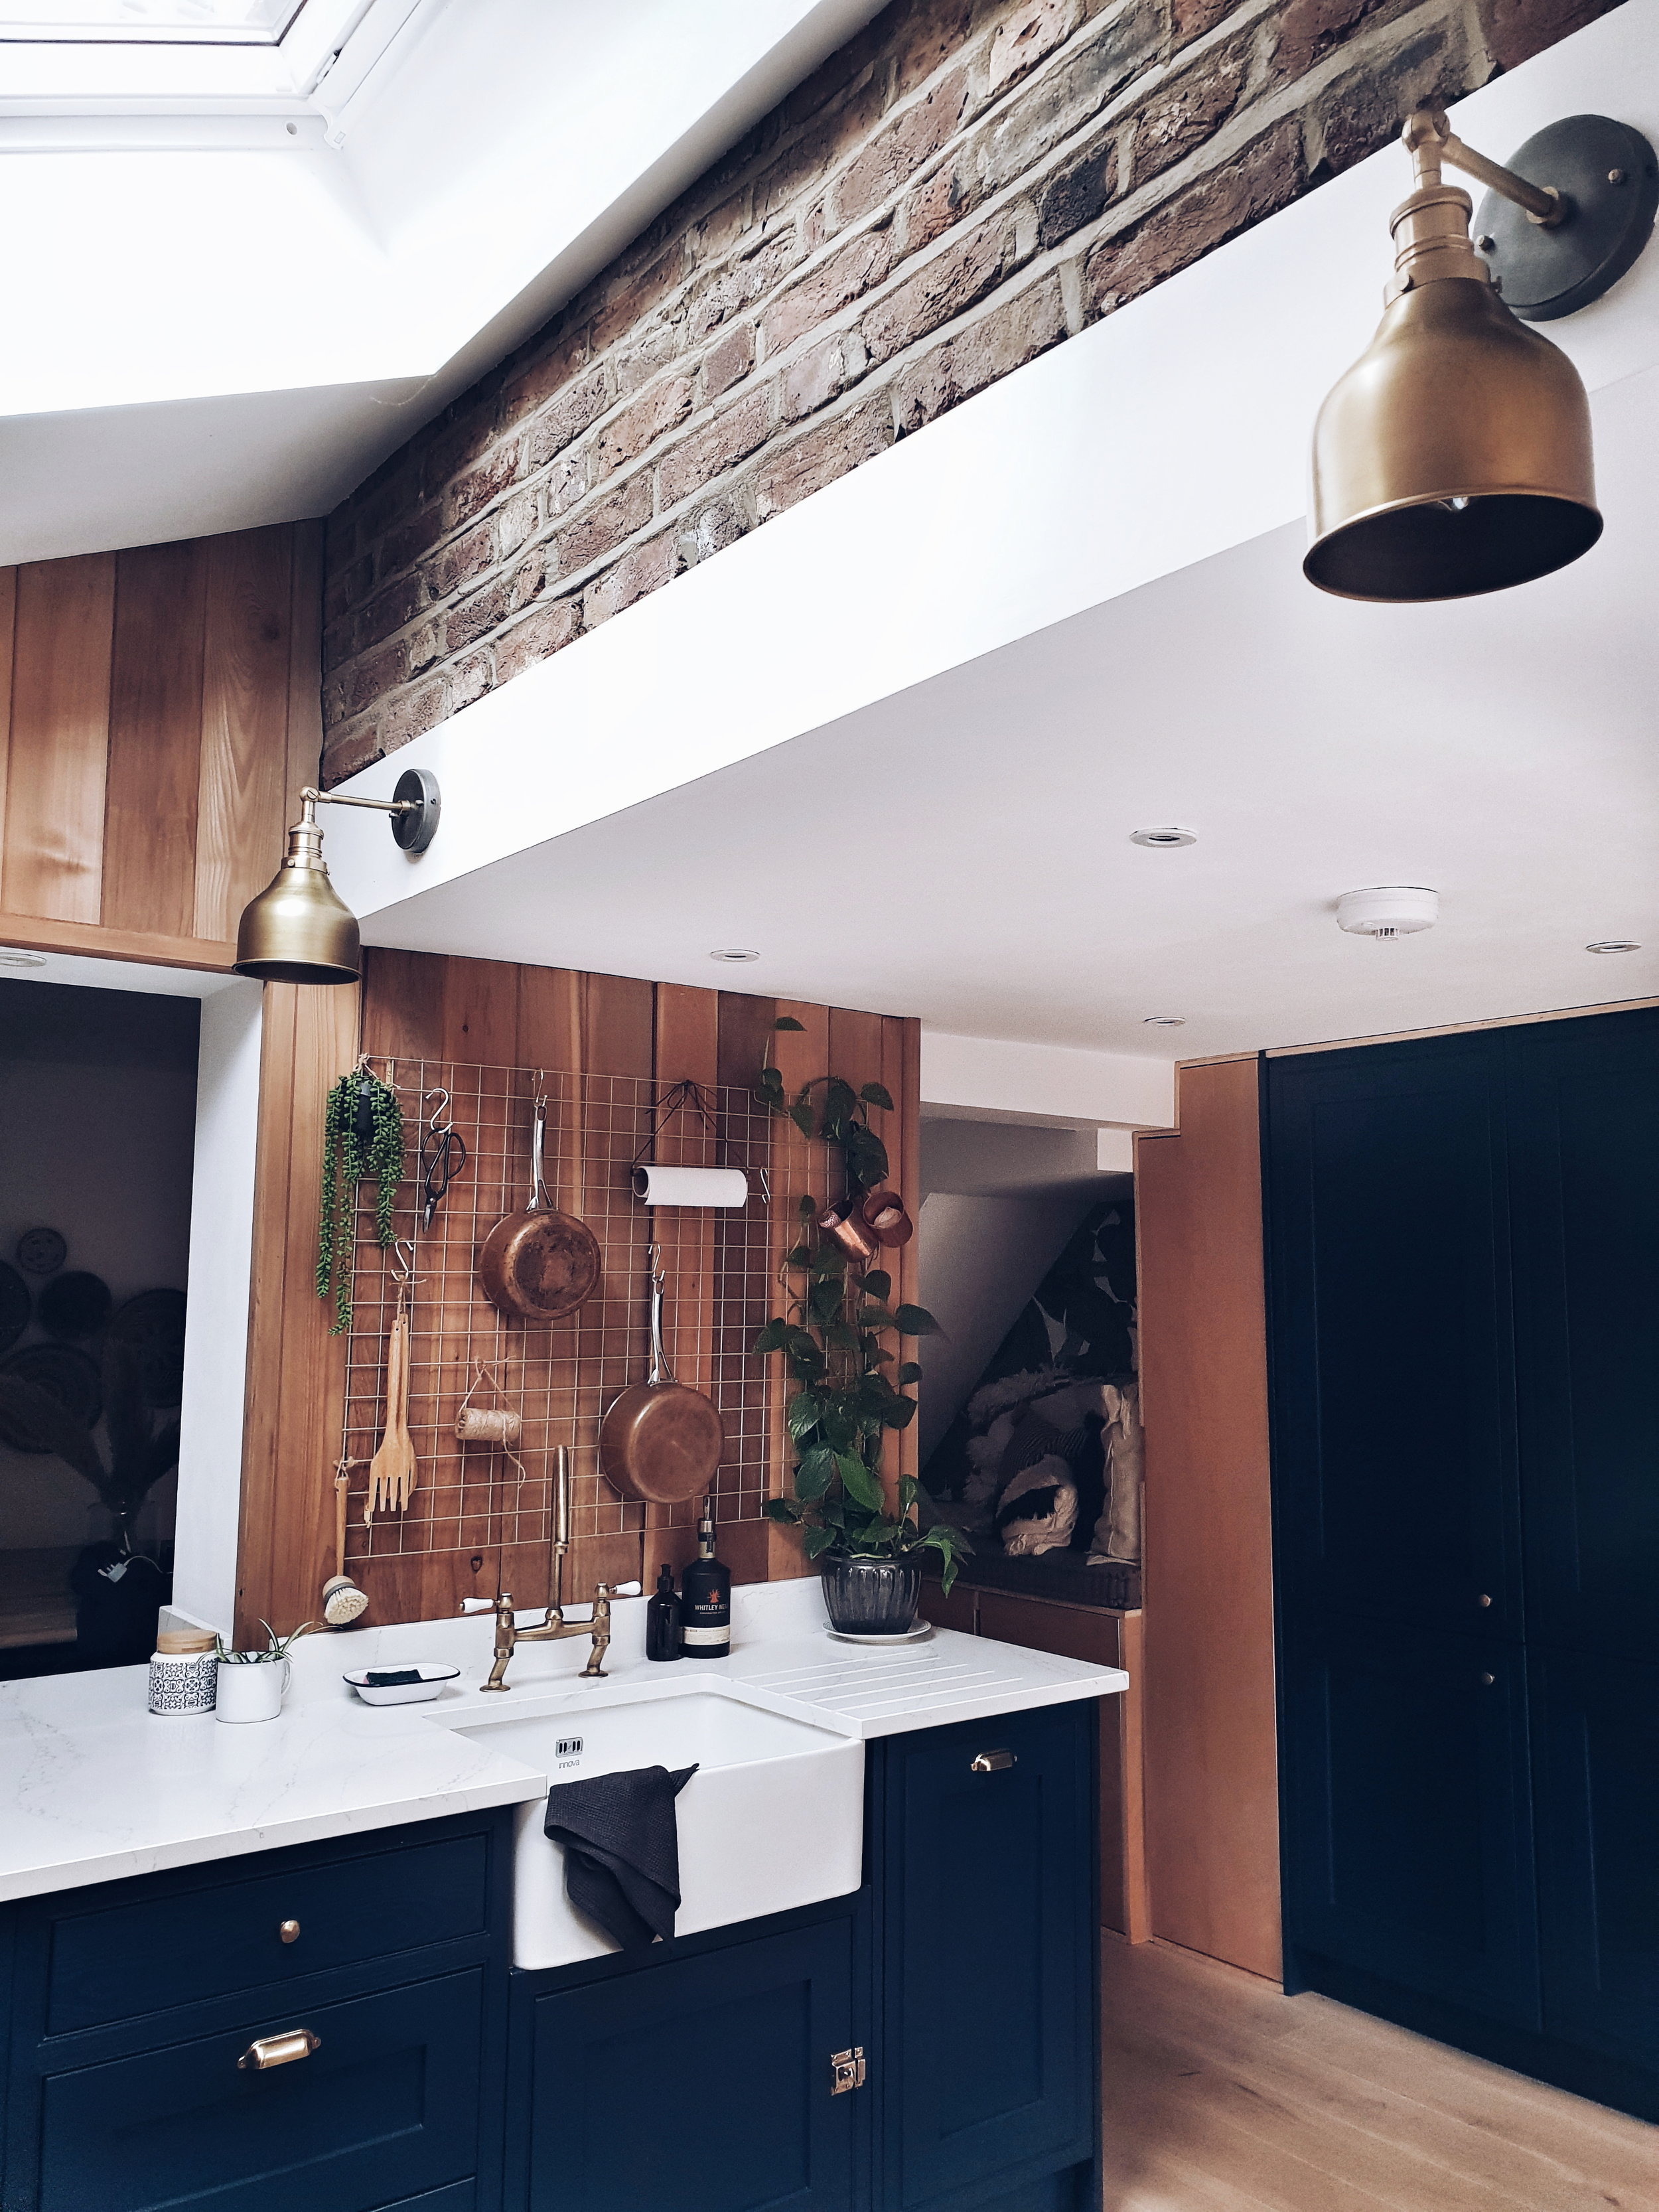 I really like their decision to leave part of the brick wall exposed in the kitchen extension to give the kitchen an industrial interiors edge. Maz's tea towel placement is also en fleek.